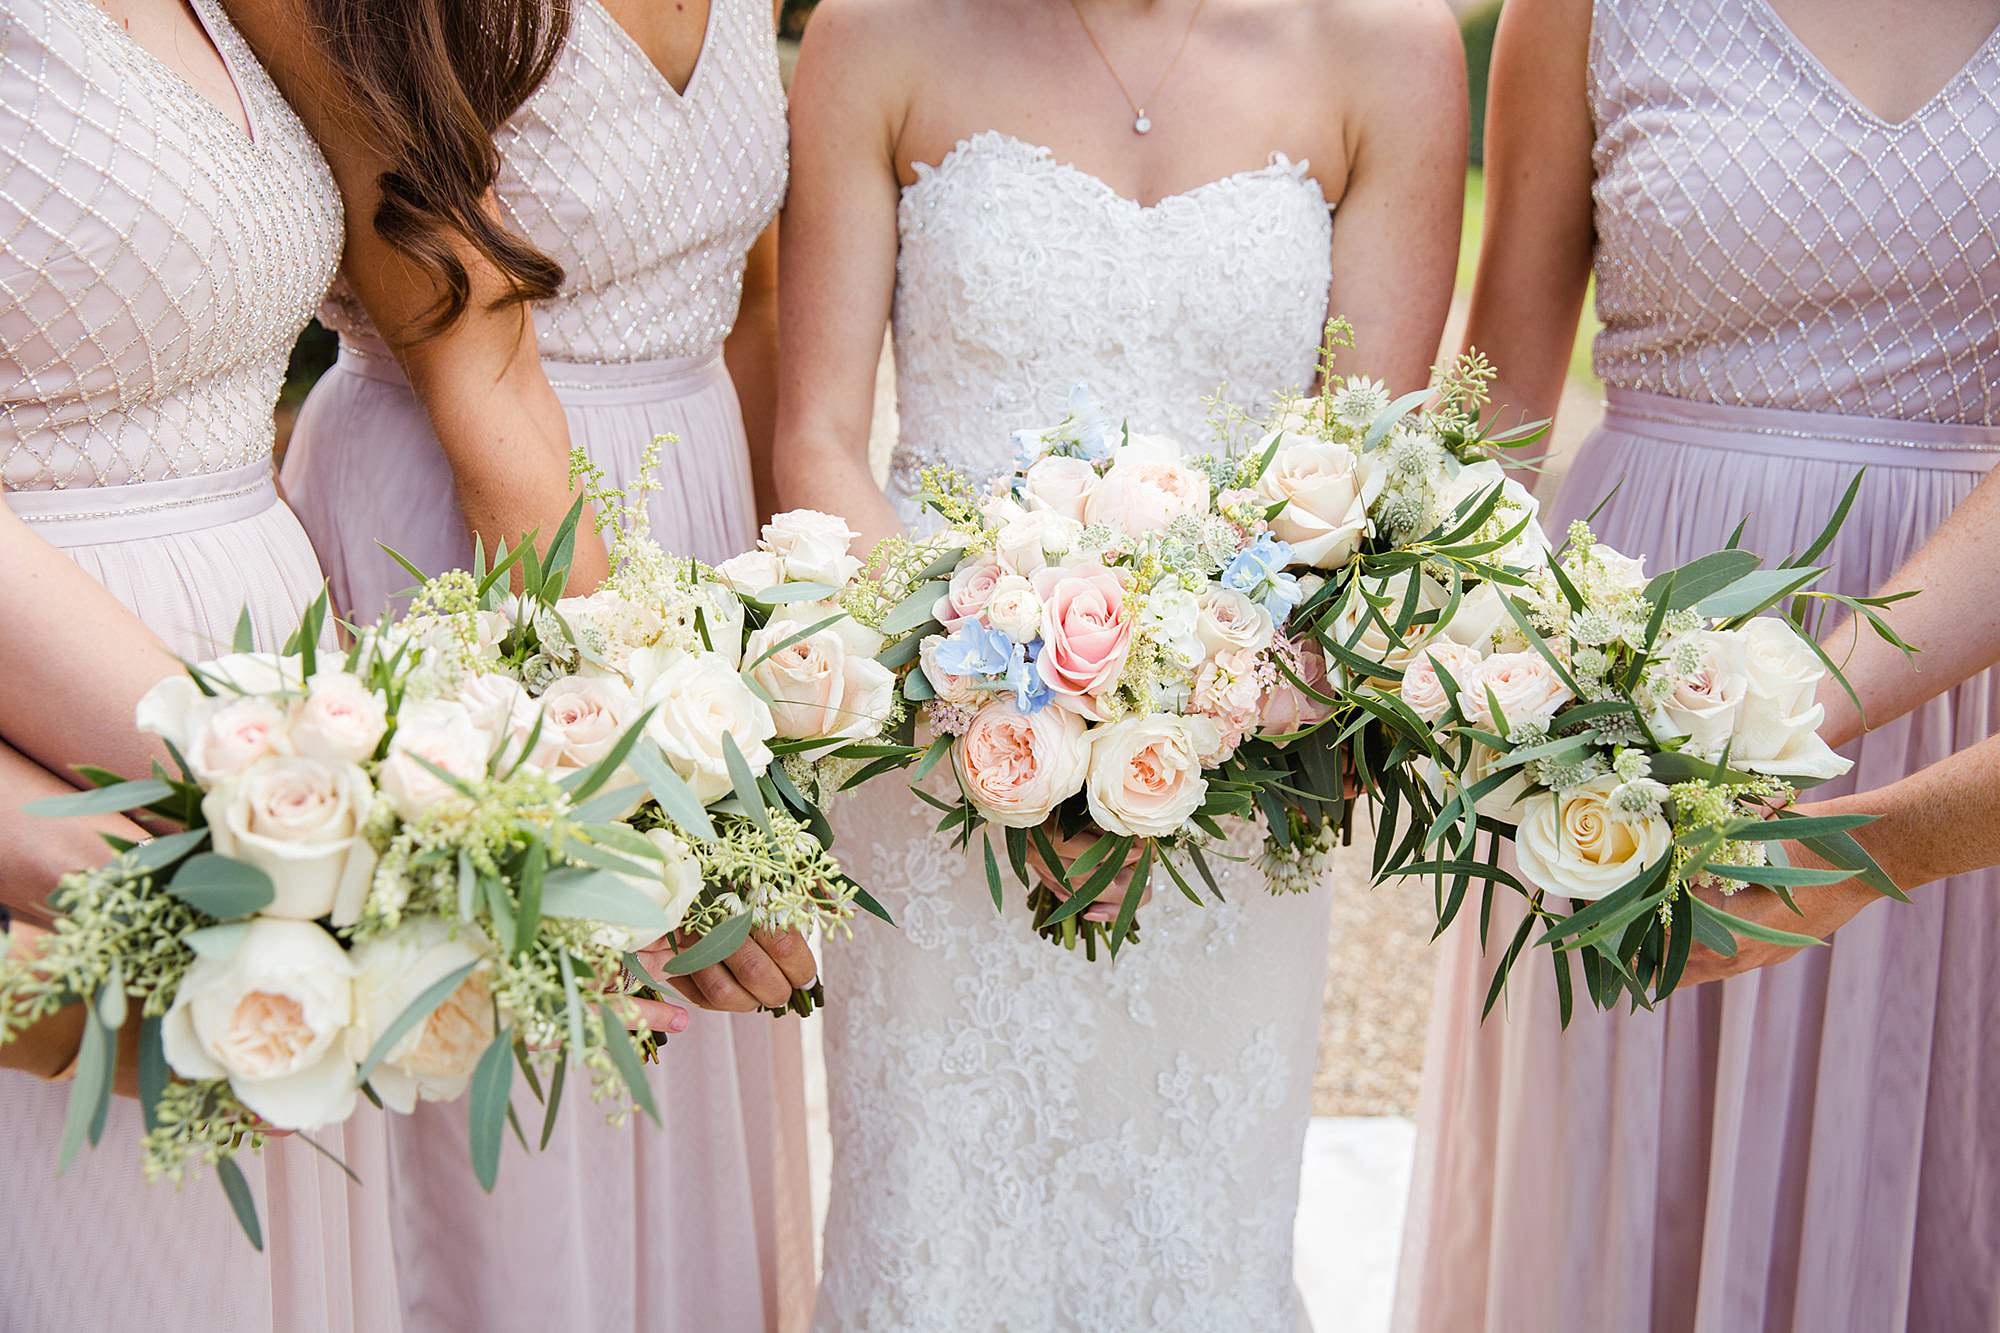 Lillibrooke Manor wedding close up detail of bride and bridesmaids bouquets